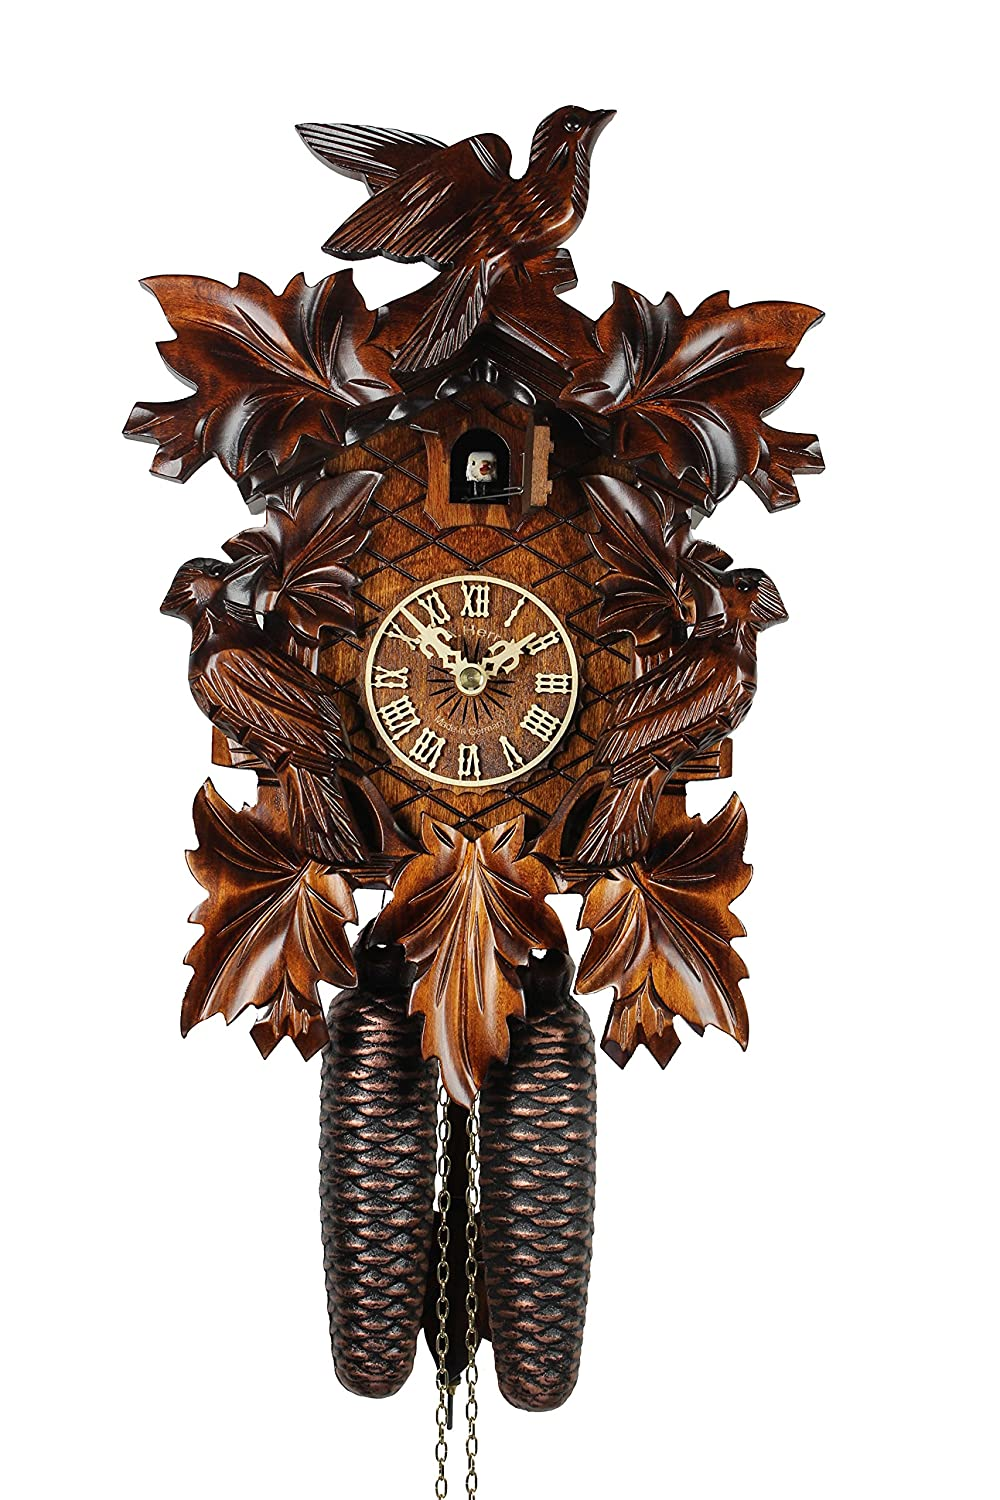 Adolf Herr Cuckoo Clock - The Traditional Cuckoo Bird